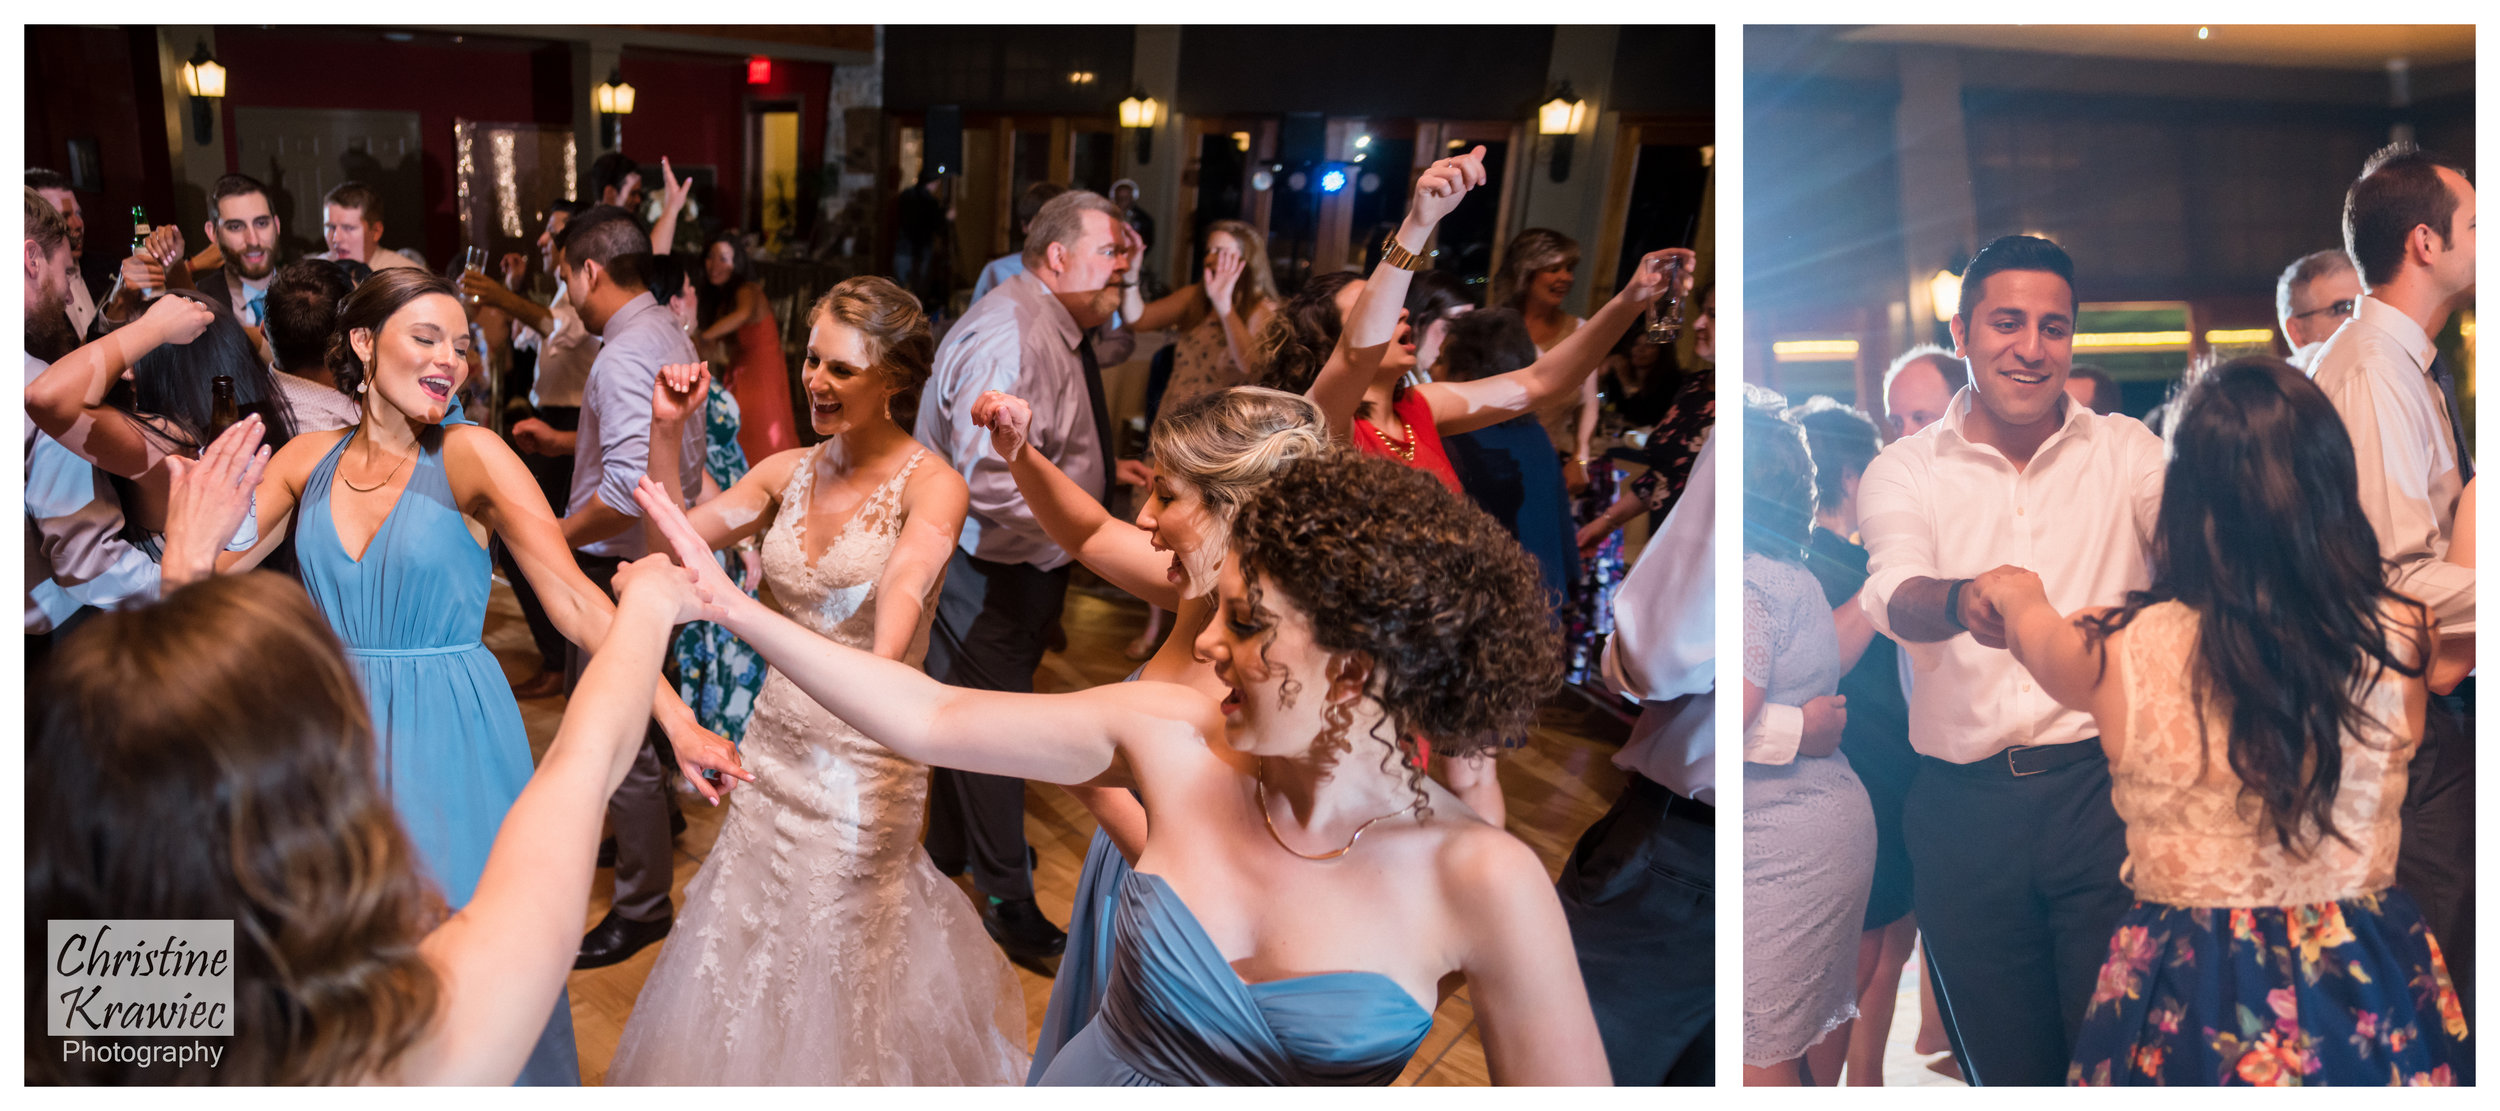 63 wedding-dancing.jpg